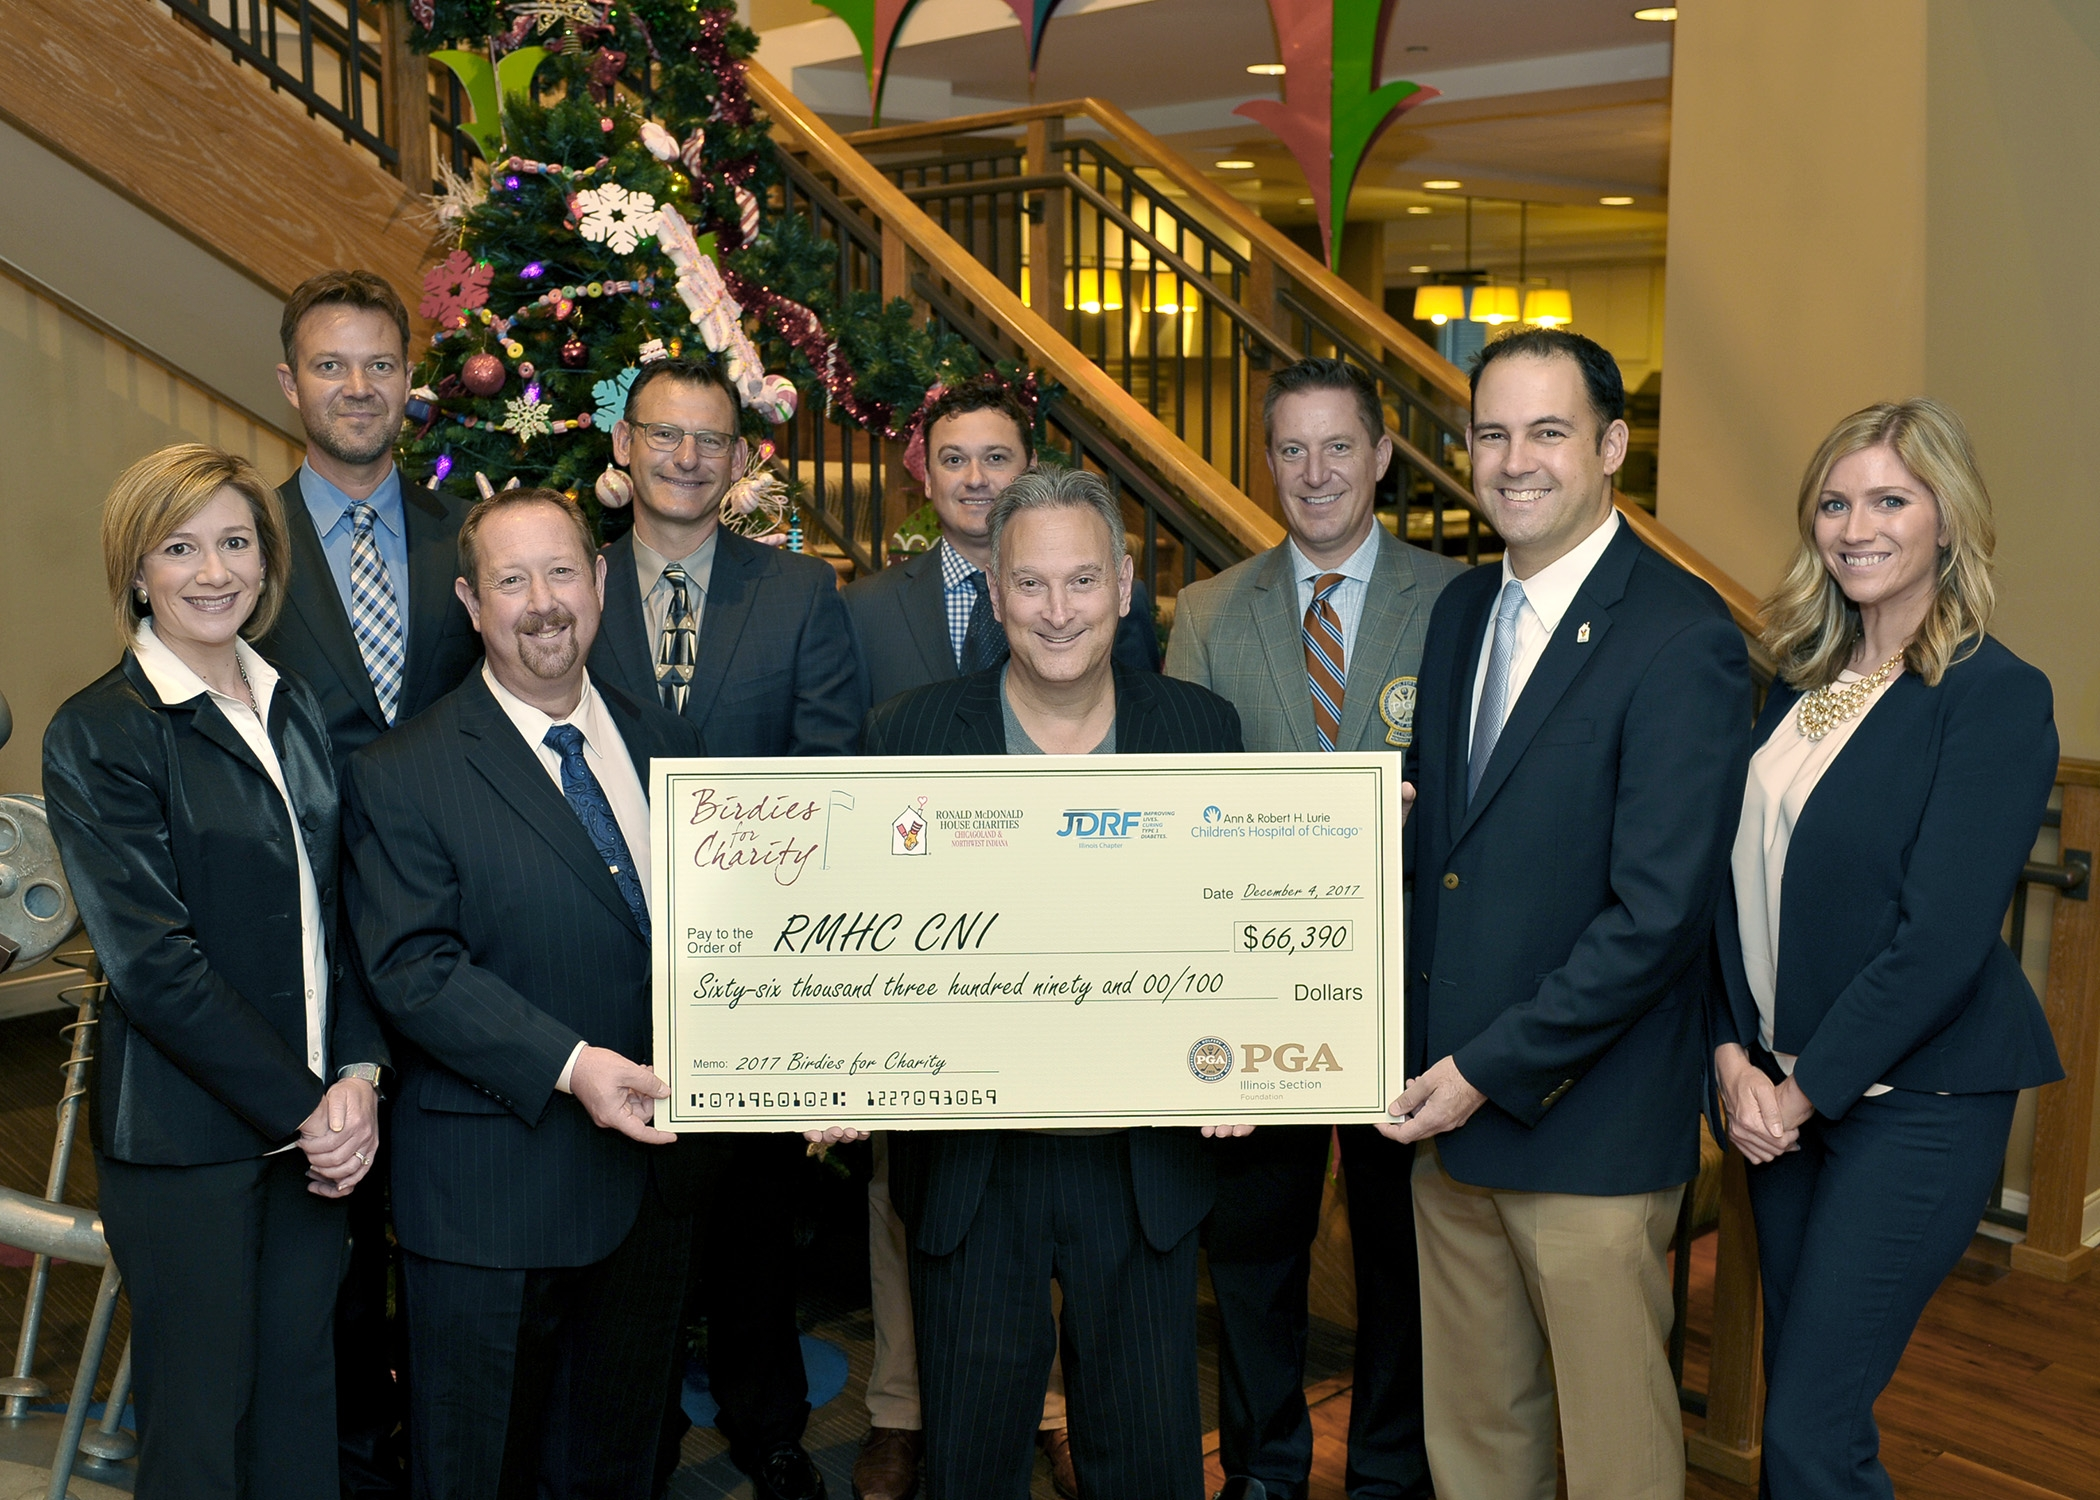 Illinois PGA Professionals and Staff present check to RMHC CNI